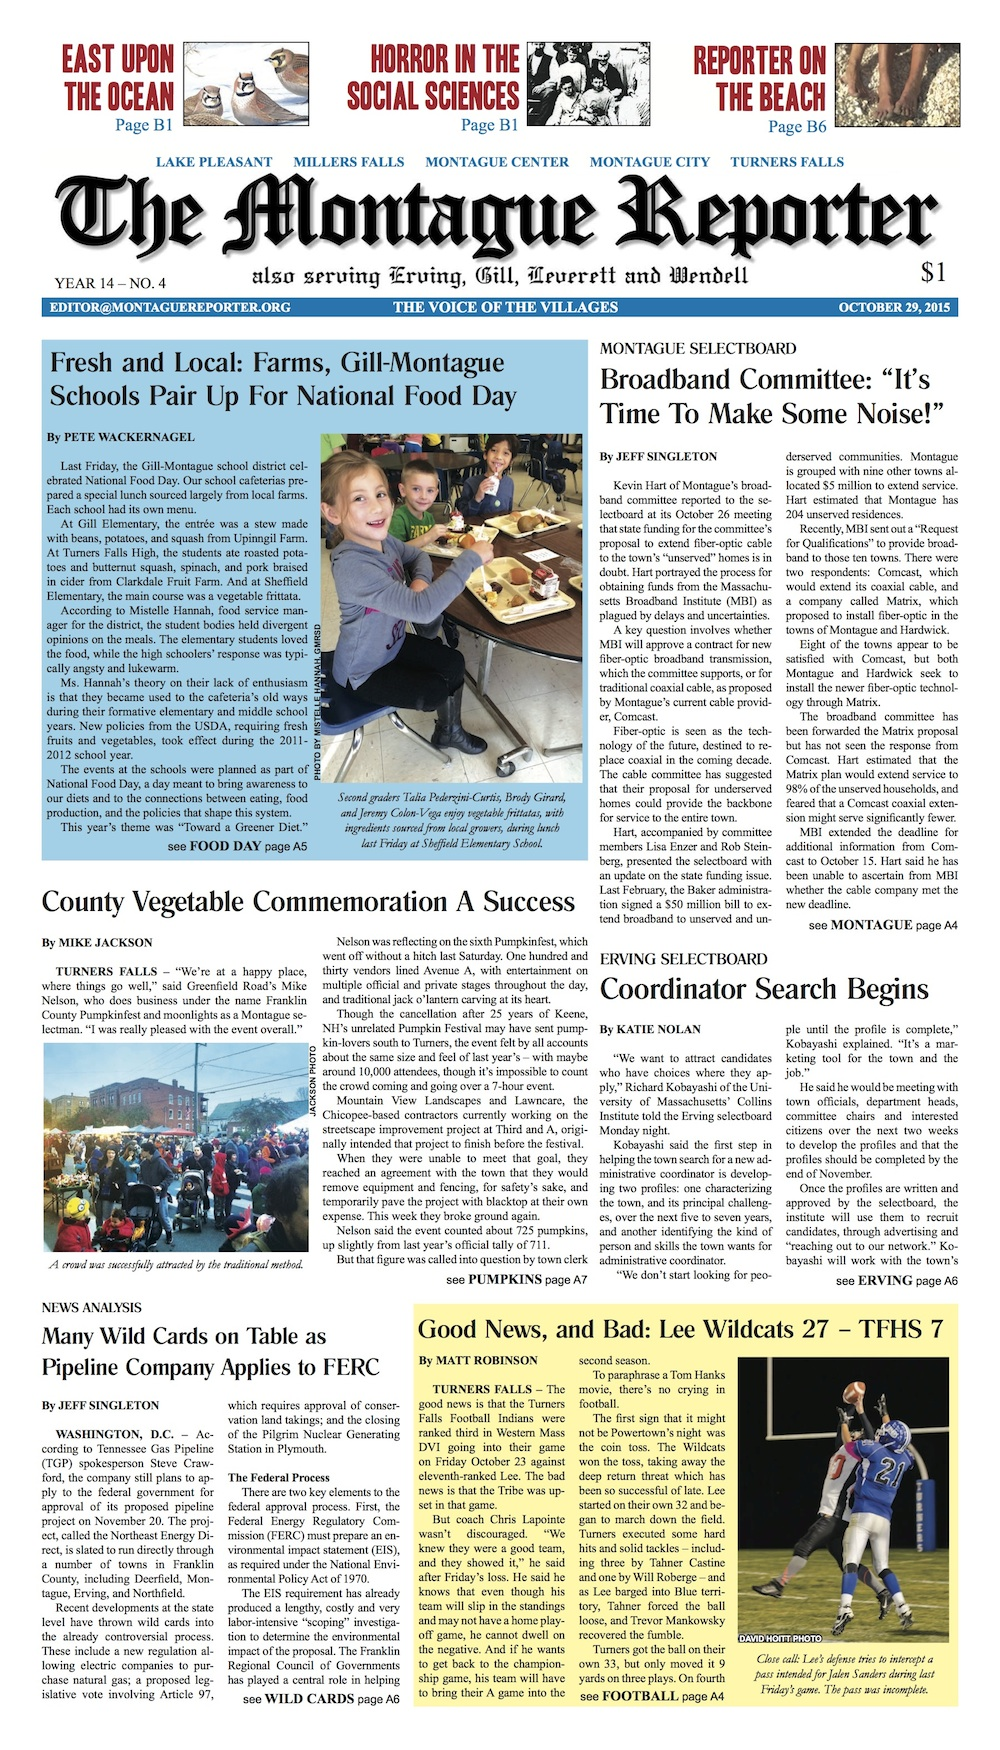 Page A1, October 29, 2015